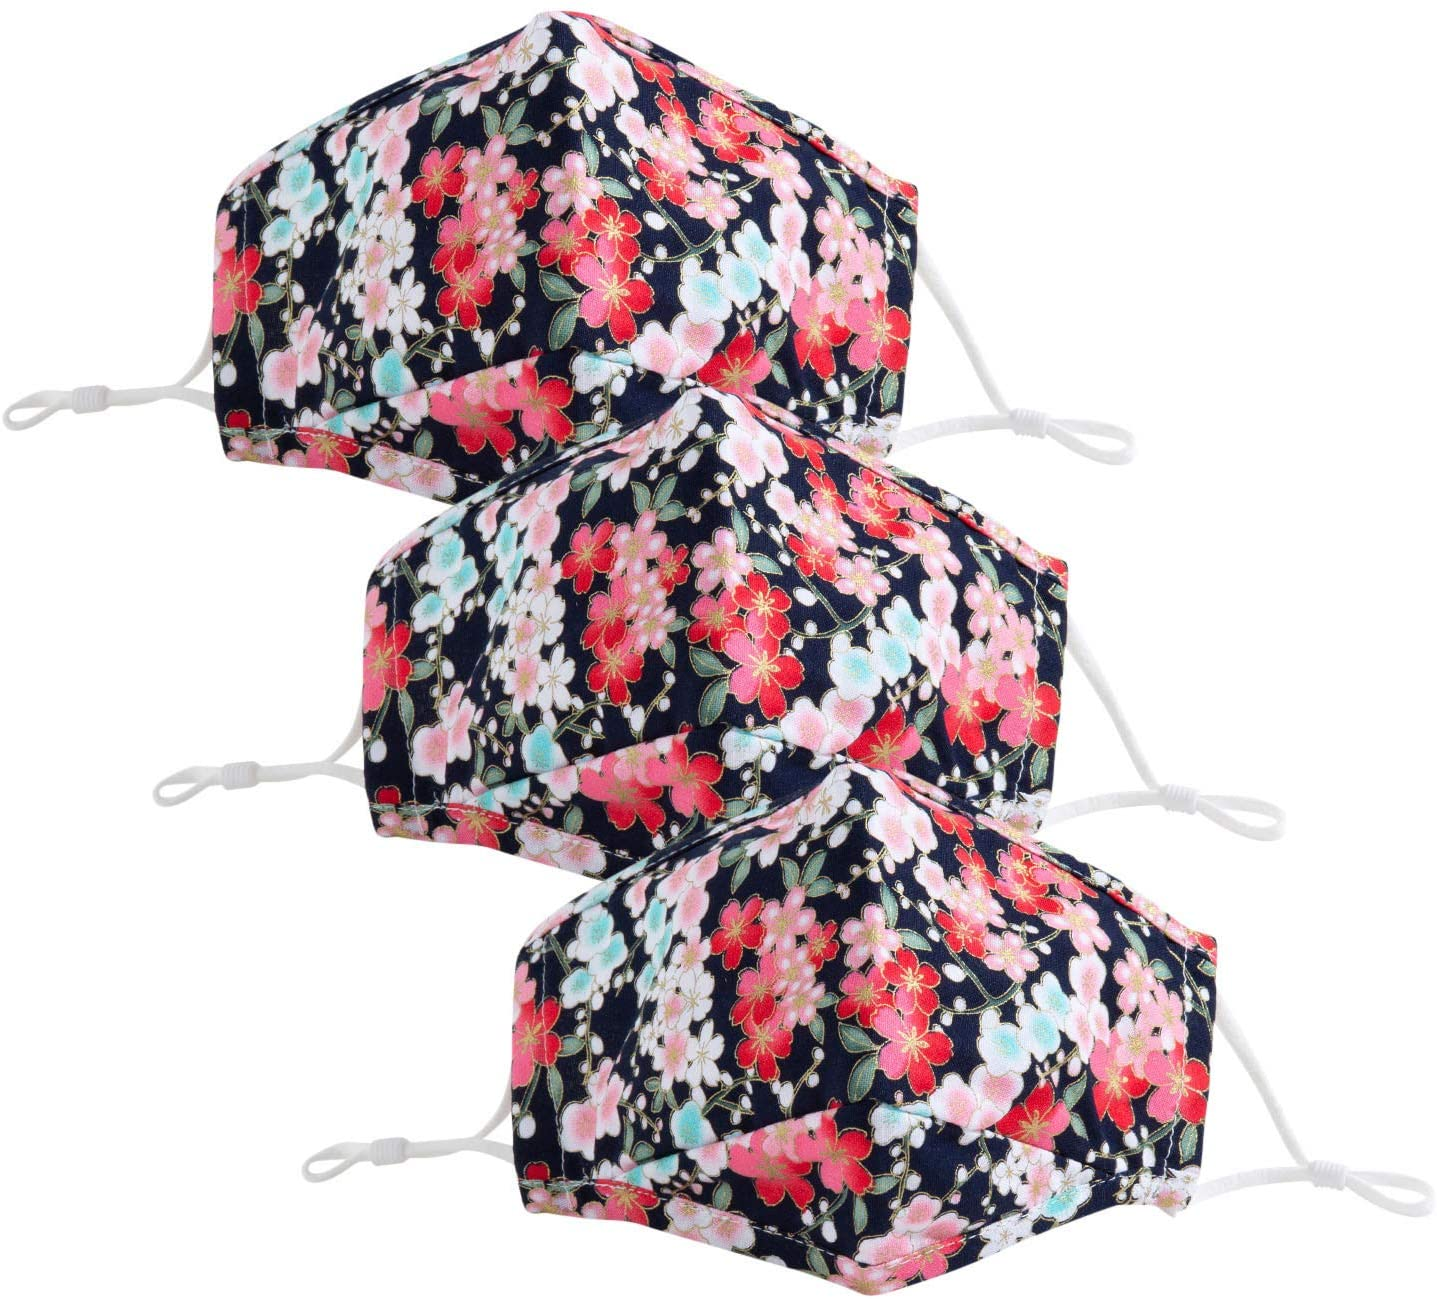 3pcs Fashion Men Women Ladies Reuse Face_mask Face Protective Reusable with Filter Pocket, Cute Colorful Floral Washable Cotton Cloth Dust Coverings with Adjustable Ear Loops, Breathable